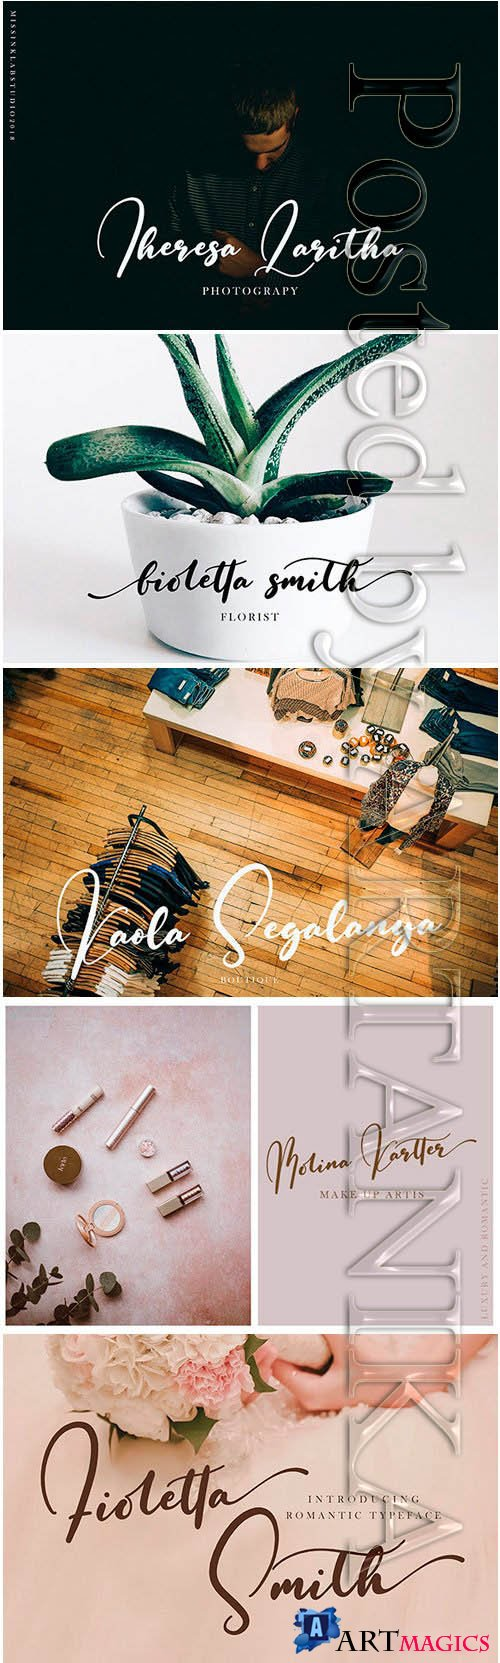 Fioletta Smith Romantic Typeface Font